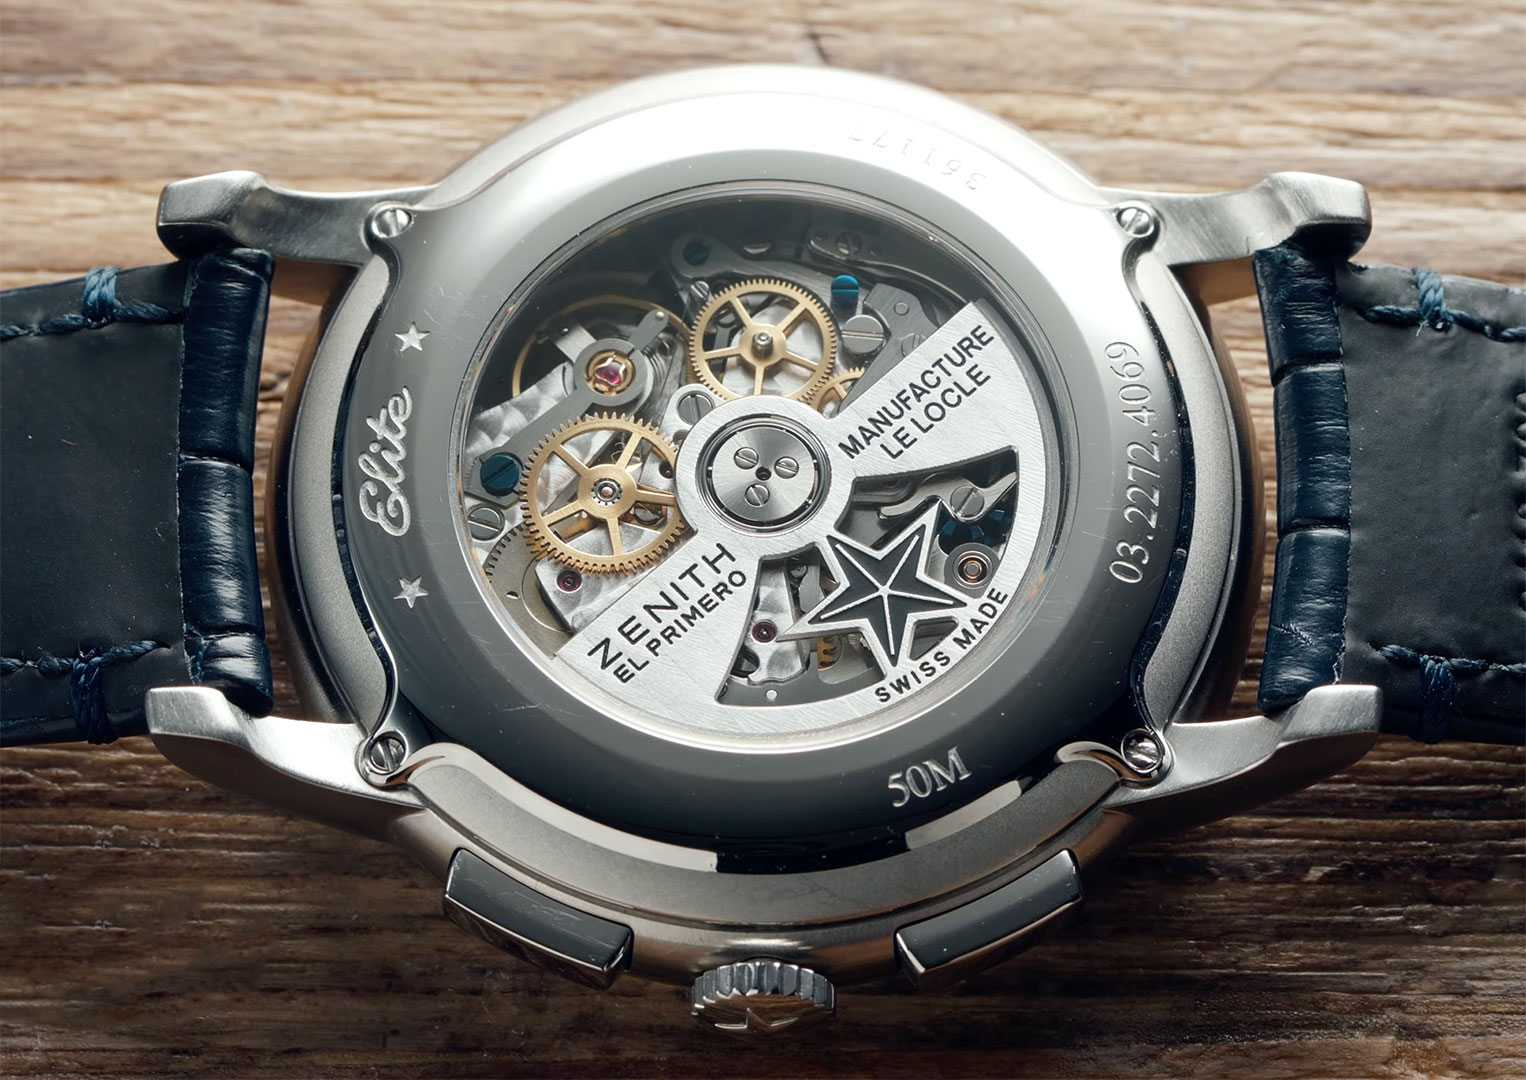 The Zenith El Primero movement could be found within the Rolex Daytona between 1988 and 2000